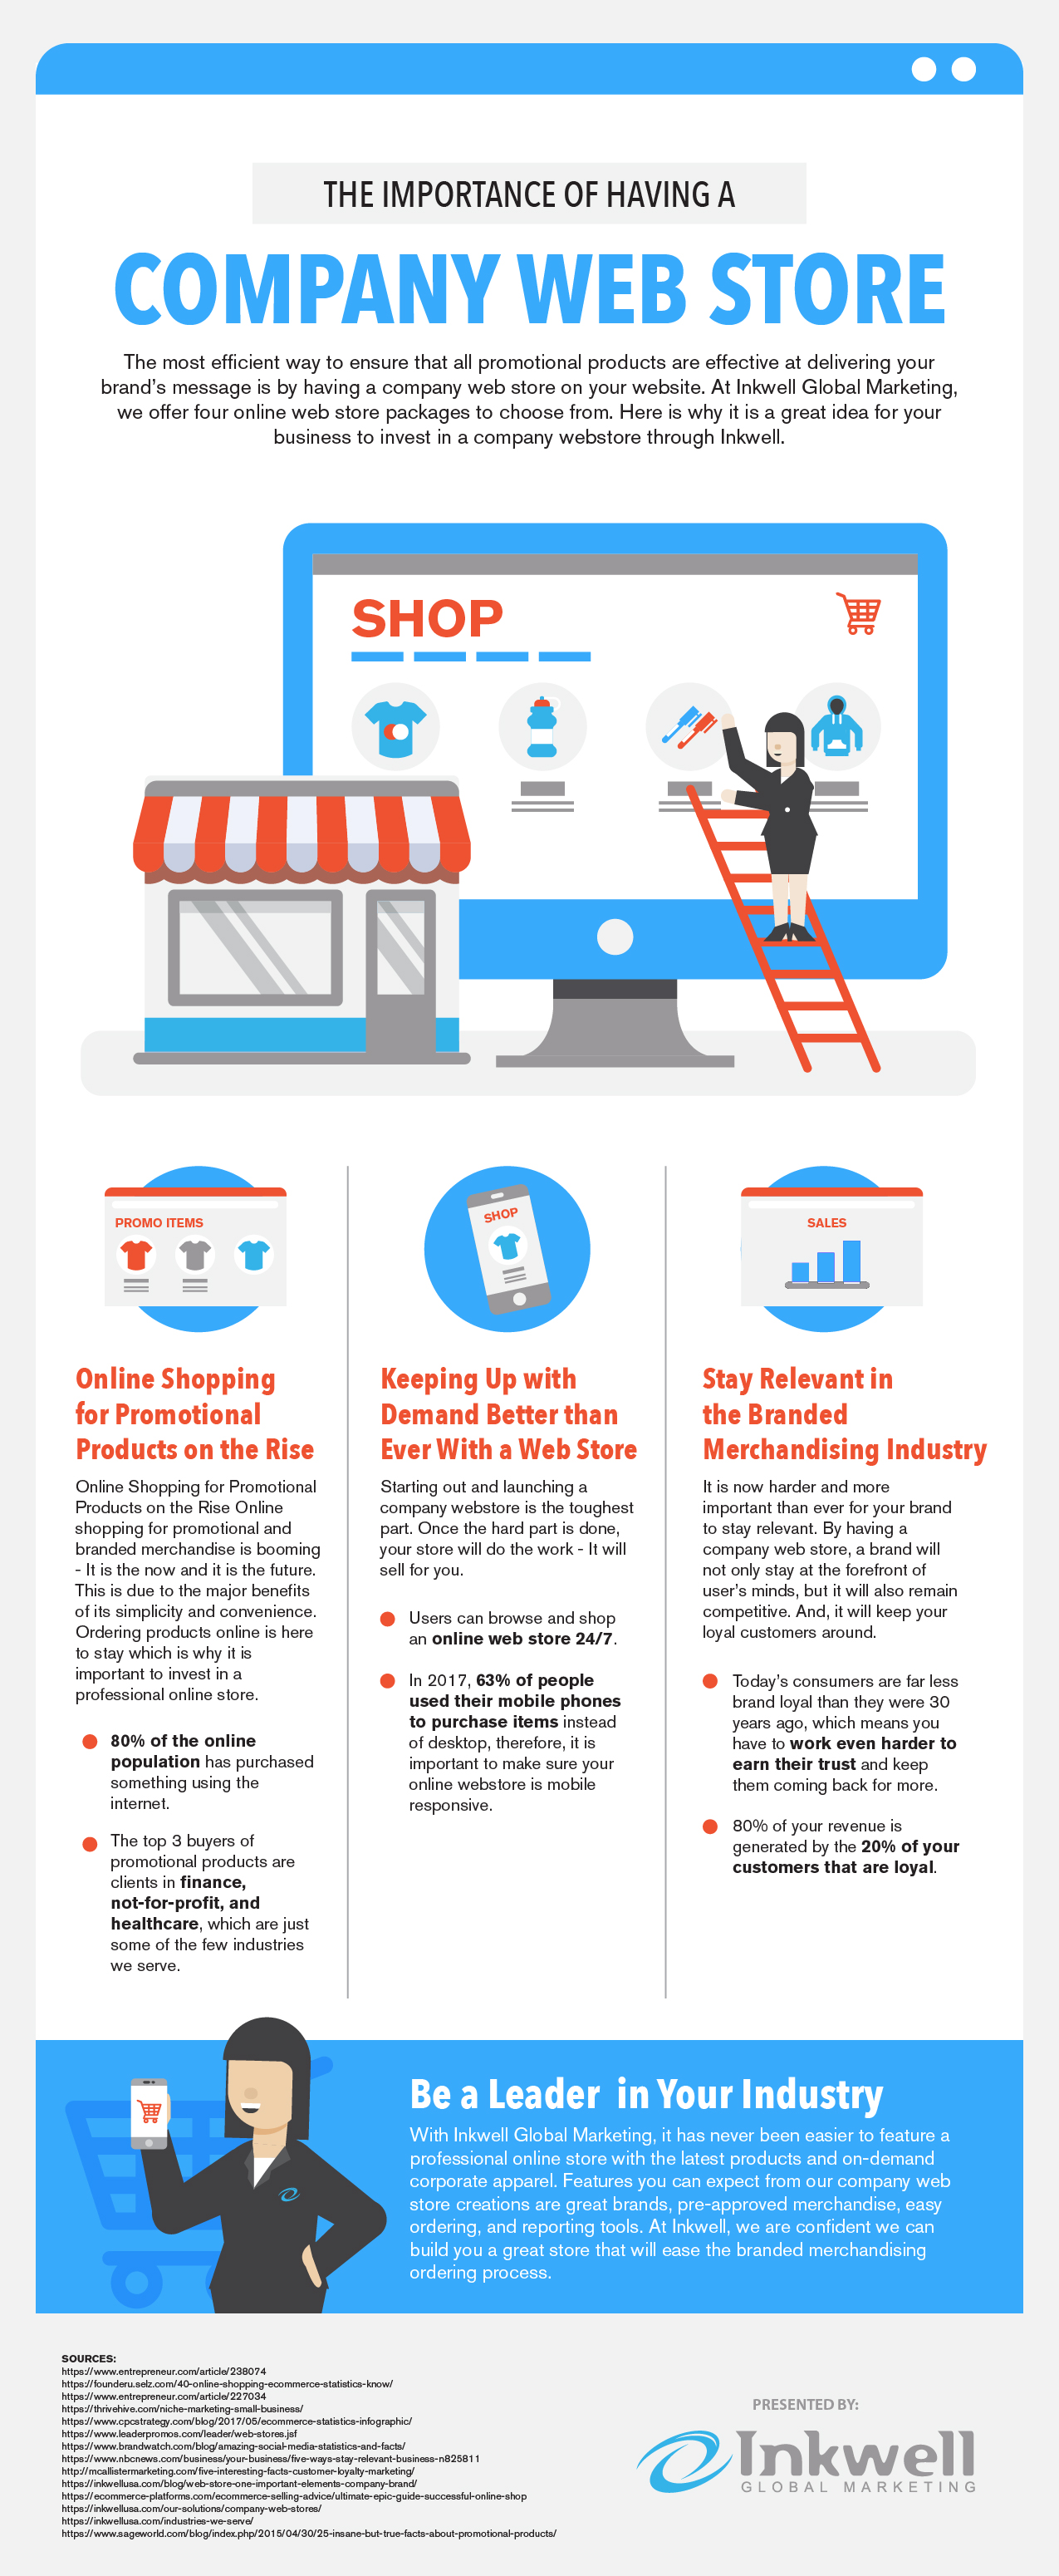 The Importance of Having a Company Web Store